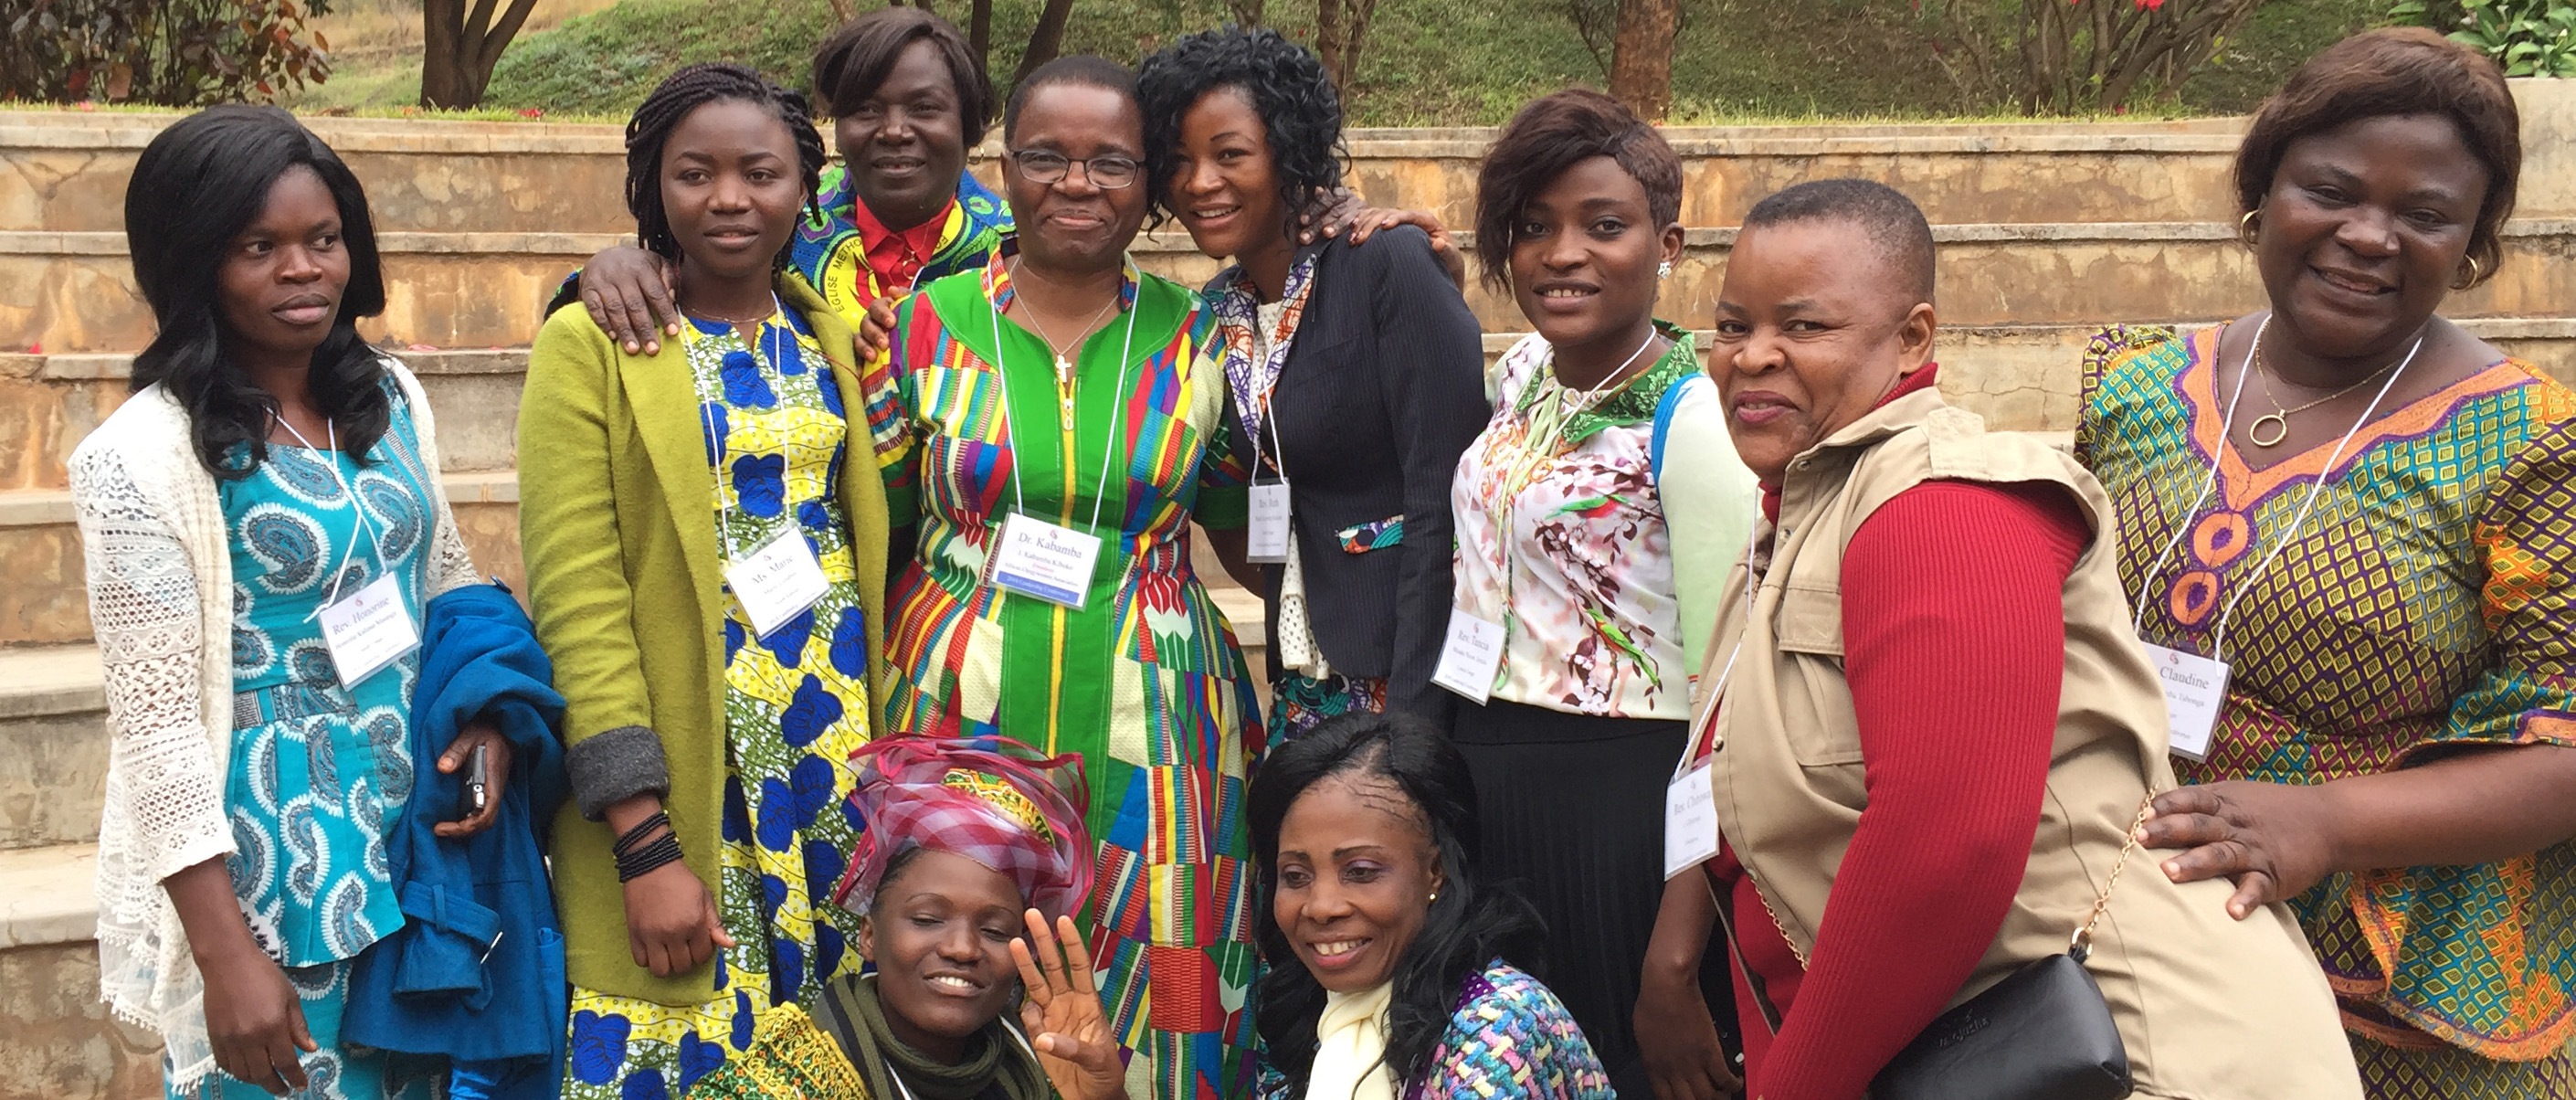 The Rev. J. Kabamba Kiboko, fourth from left, top row, gathers with other participants at the 2018 leadership development conference for African United Methodist clergywomen. Kiboko and retired United Methodist Bishop Linda Lee are leading the planning for a 2022 gathering at Africa University. Photo by Kalamba Kilumba.